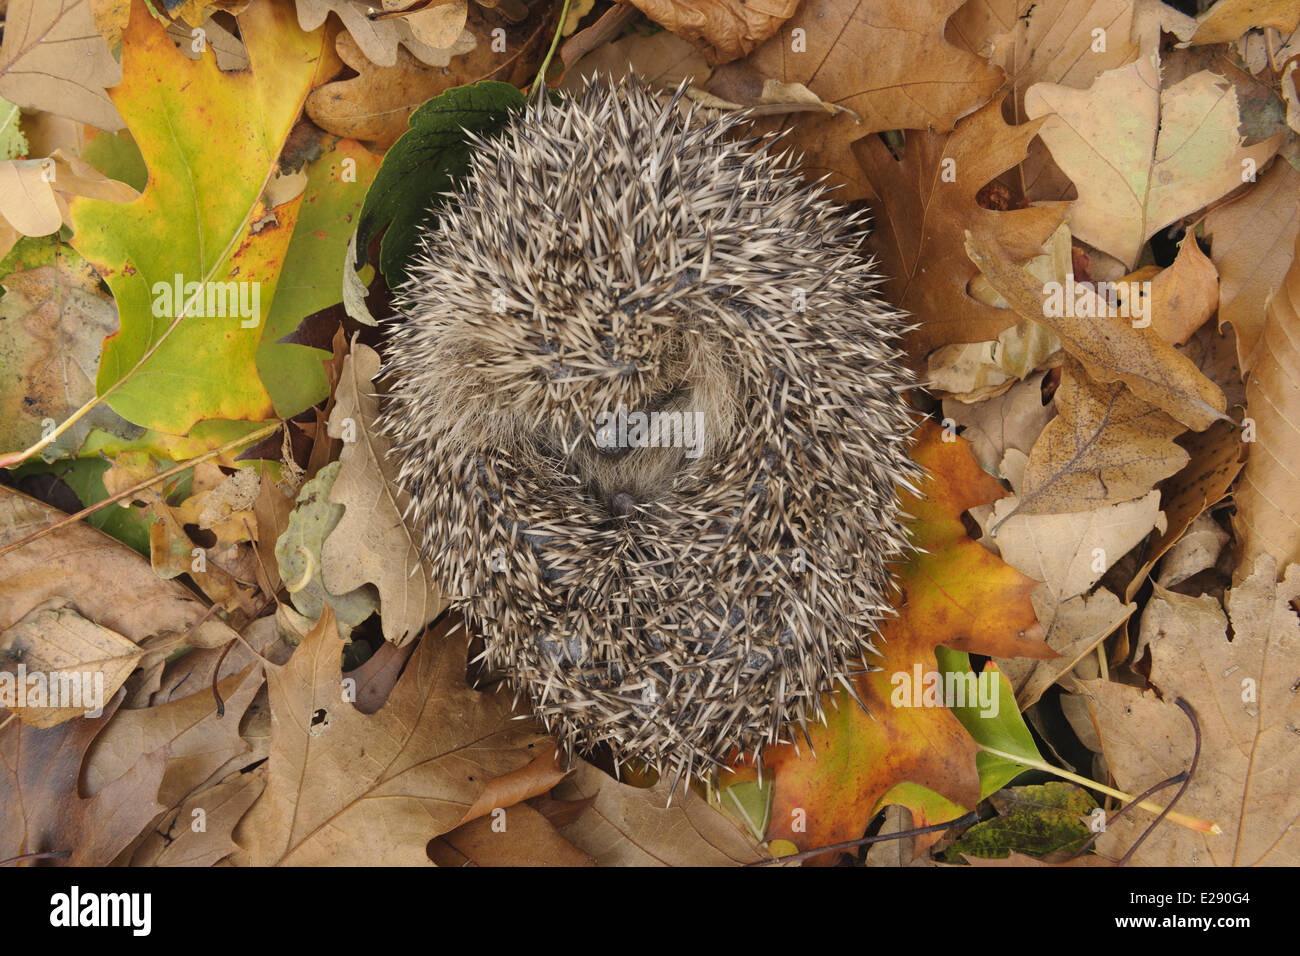 European Hedgehog (Erinaceus europaeus) immature, rescued animal sleeping amongst fallen leaves in garden, Staffordshire, - Stock Image